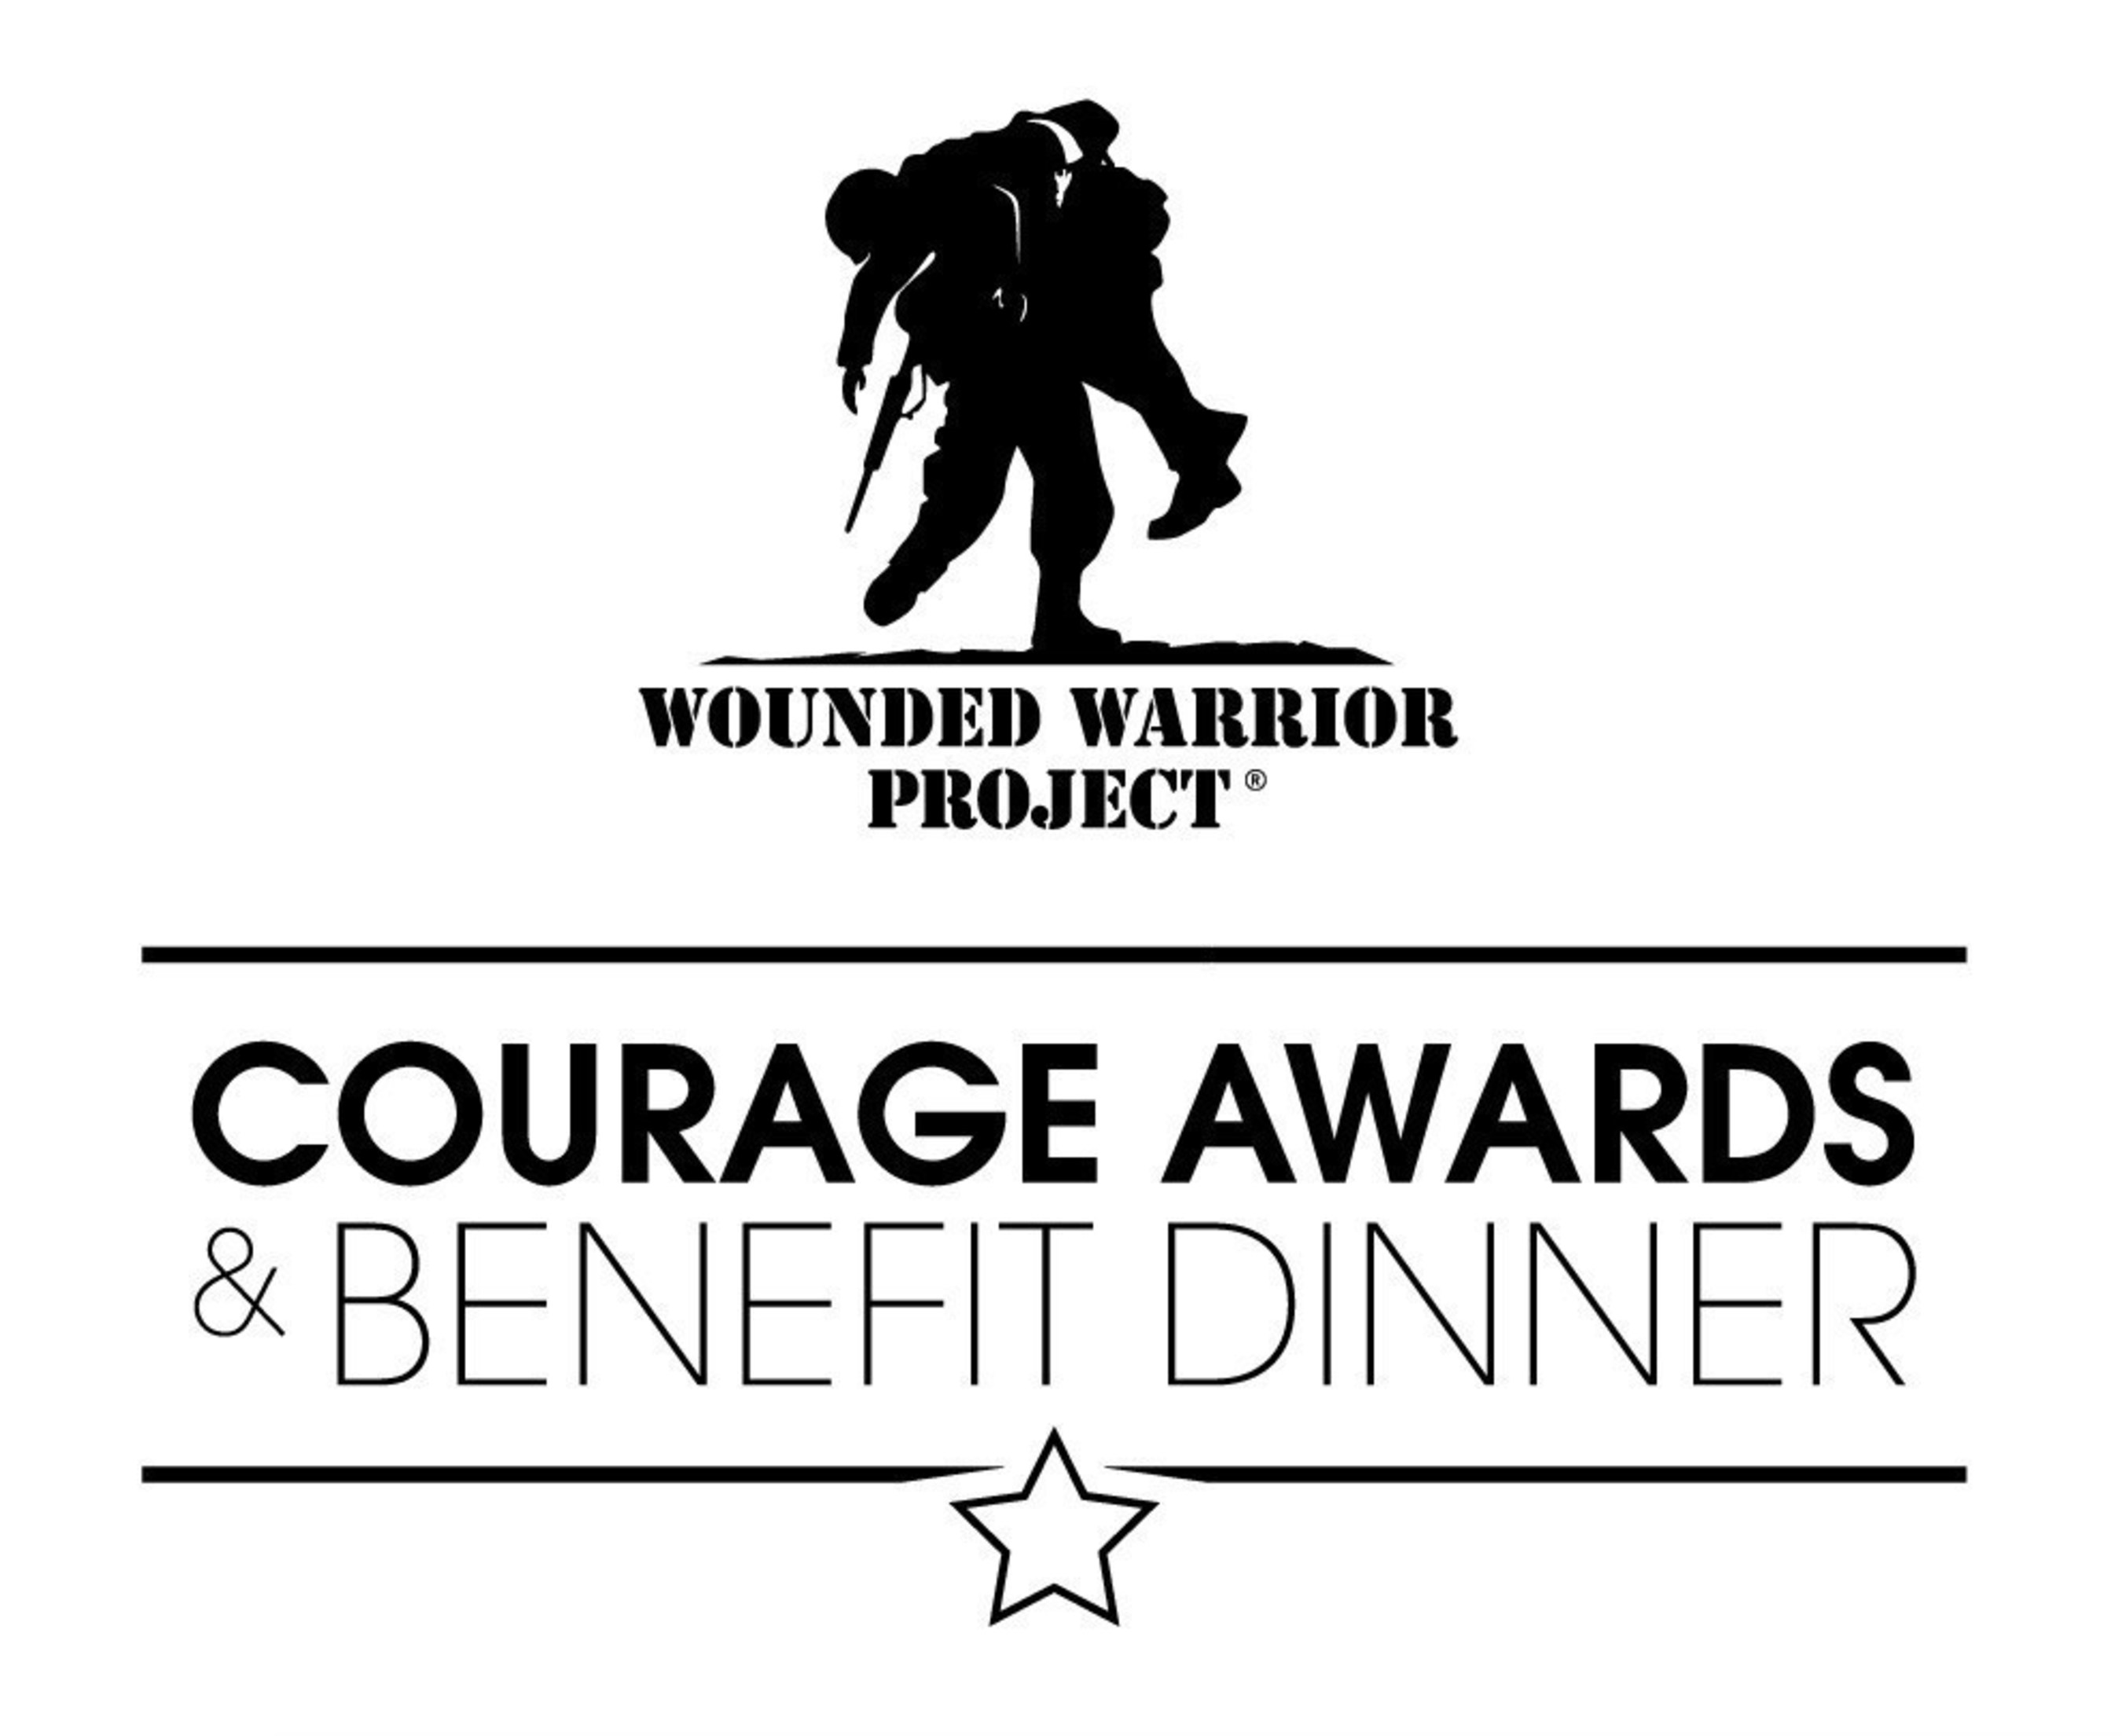 The 10th annual Wounded Warrior Project(R) Courage Awards & Benefit Dinner(R) presented by First Data Corporation and the Joe Plumeri Foundation, with the generous support of USAA, is being held on Thursday, May 28, 2015, at the Waldorf Astoria(R) in New York City.